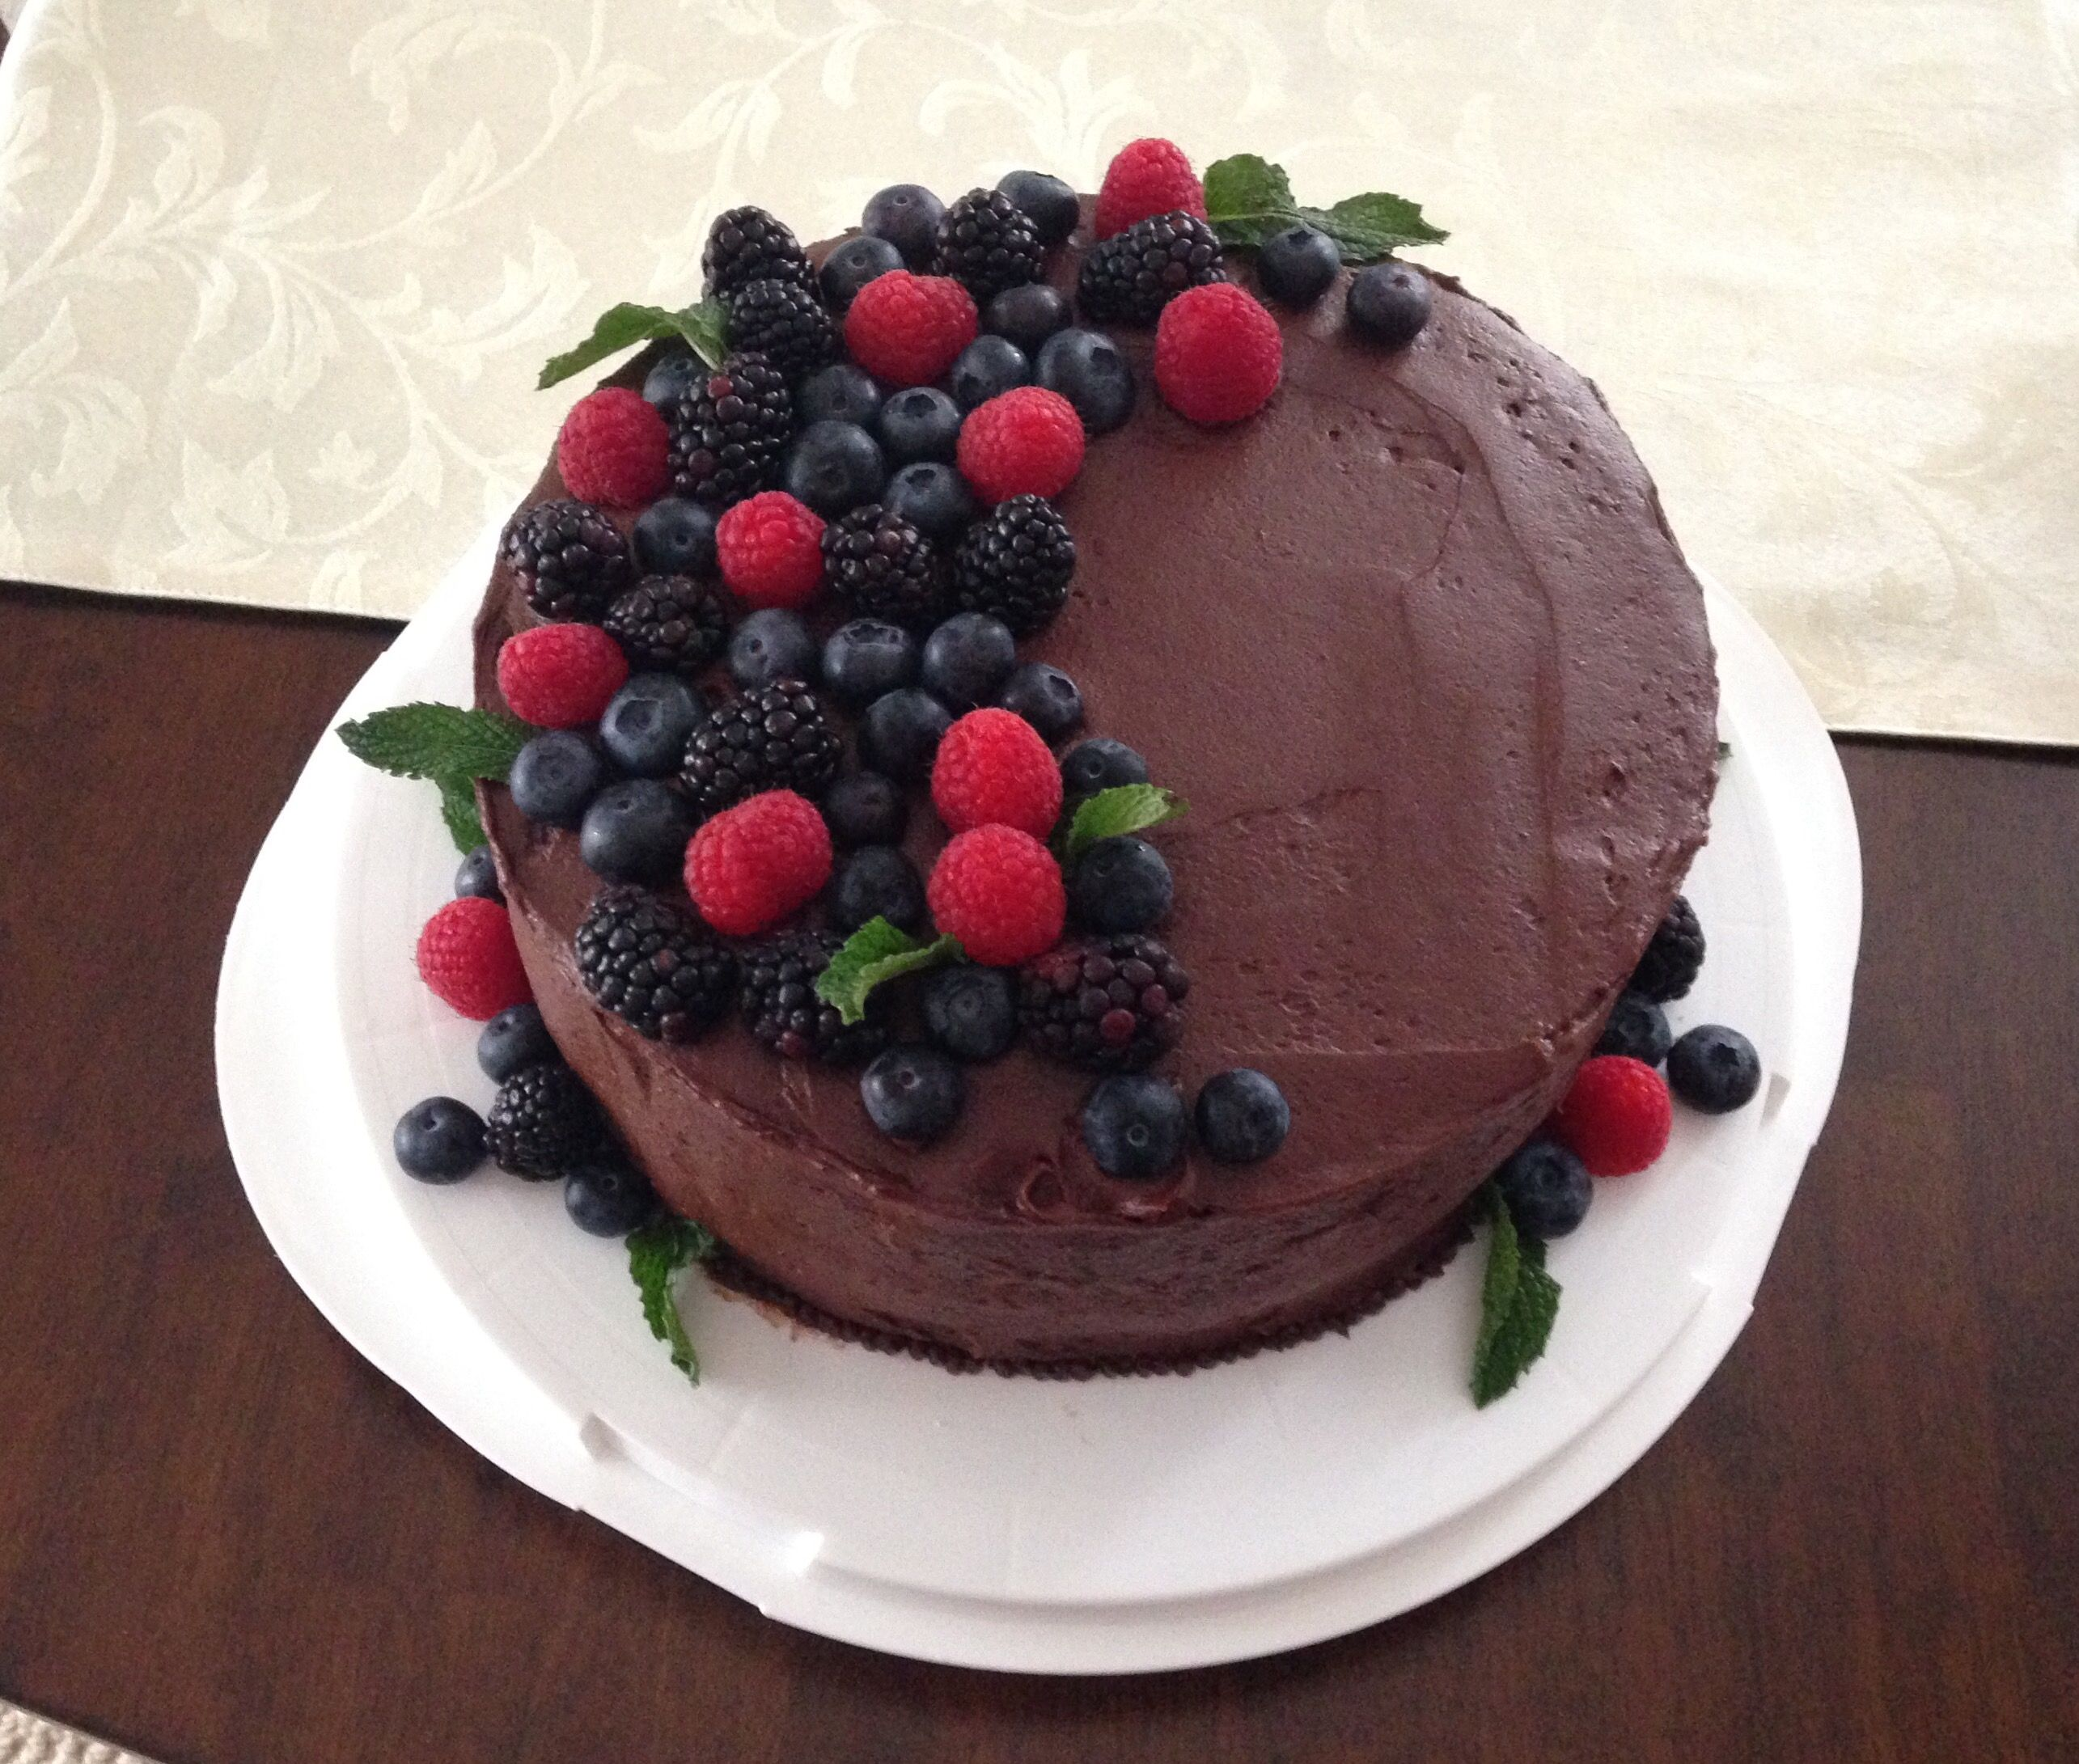 Hershey's chocolate cake with Hershey's chocolate frosting. Mix of ...